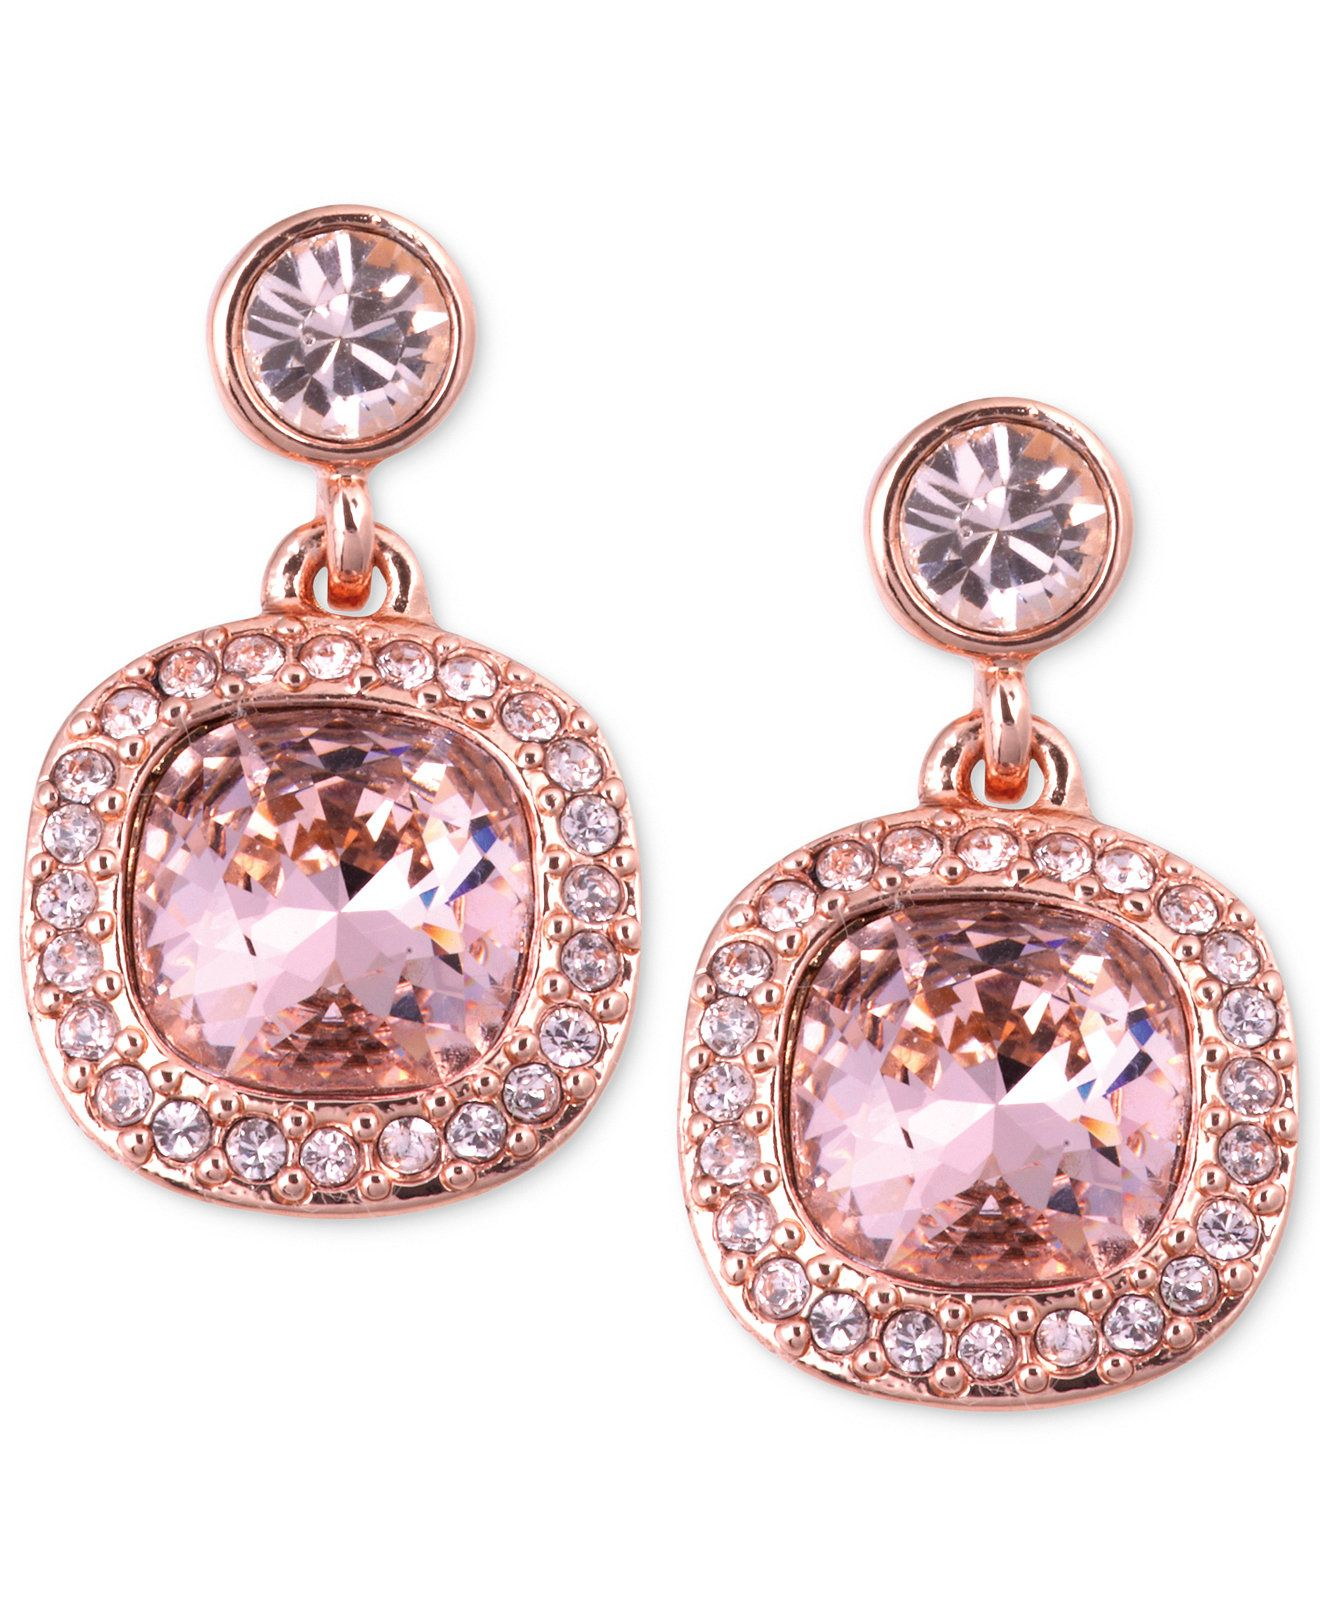 6c4880632 What bridesmaids wouldn't love these delightfully pink Givenchy earrings?  Surprise your girls on the big day with this extra sparkly gift.